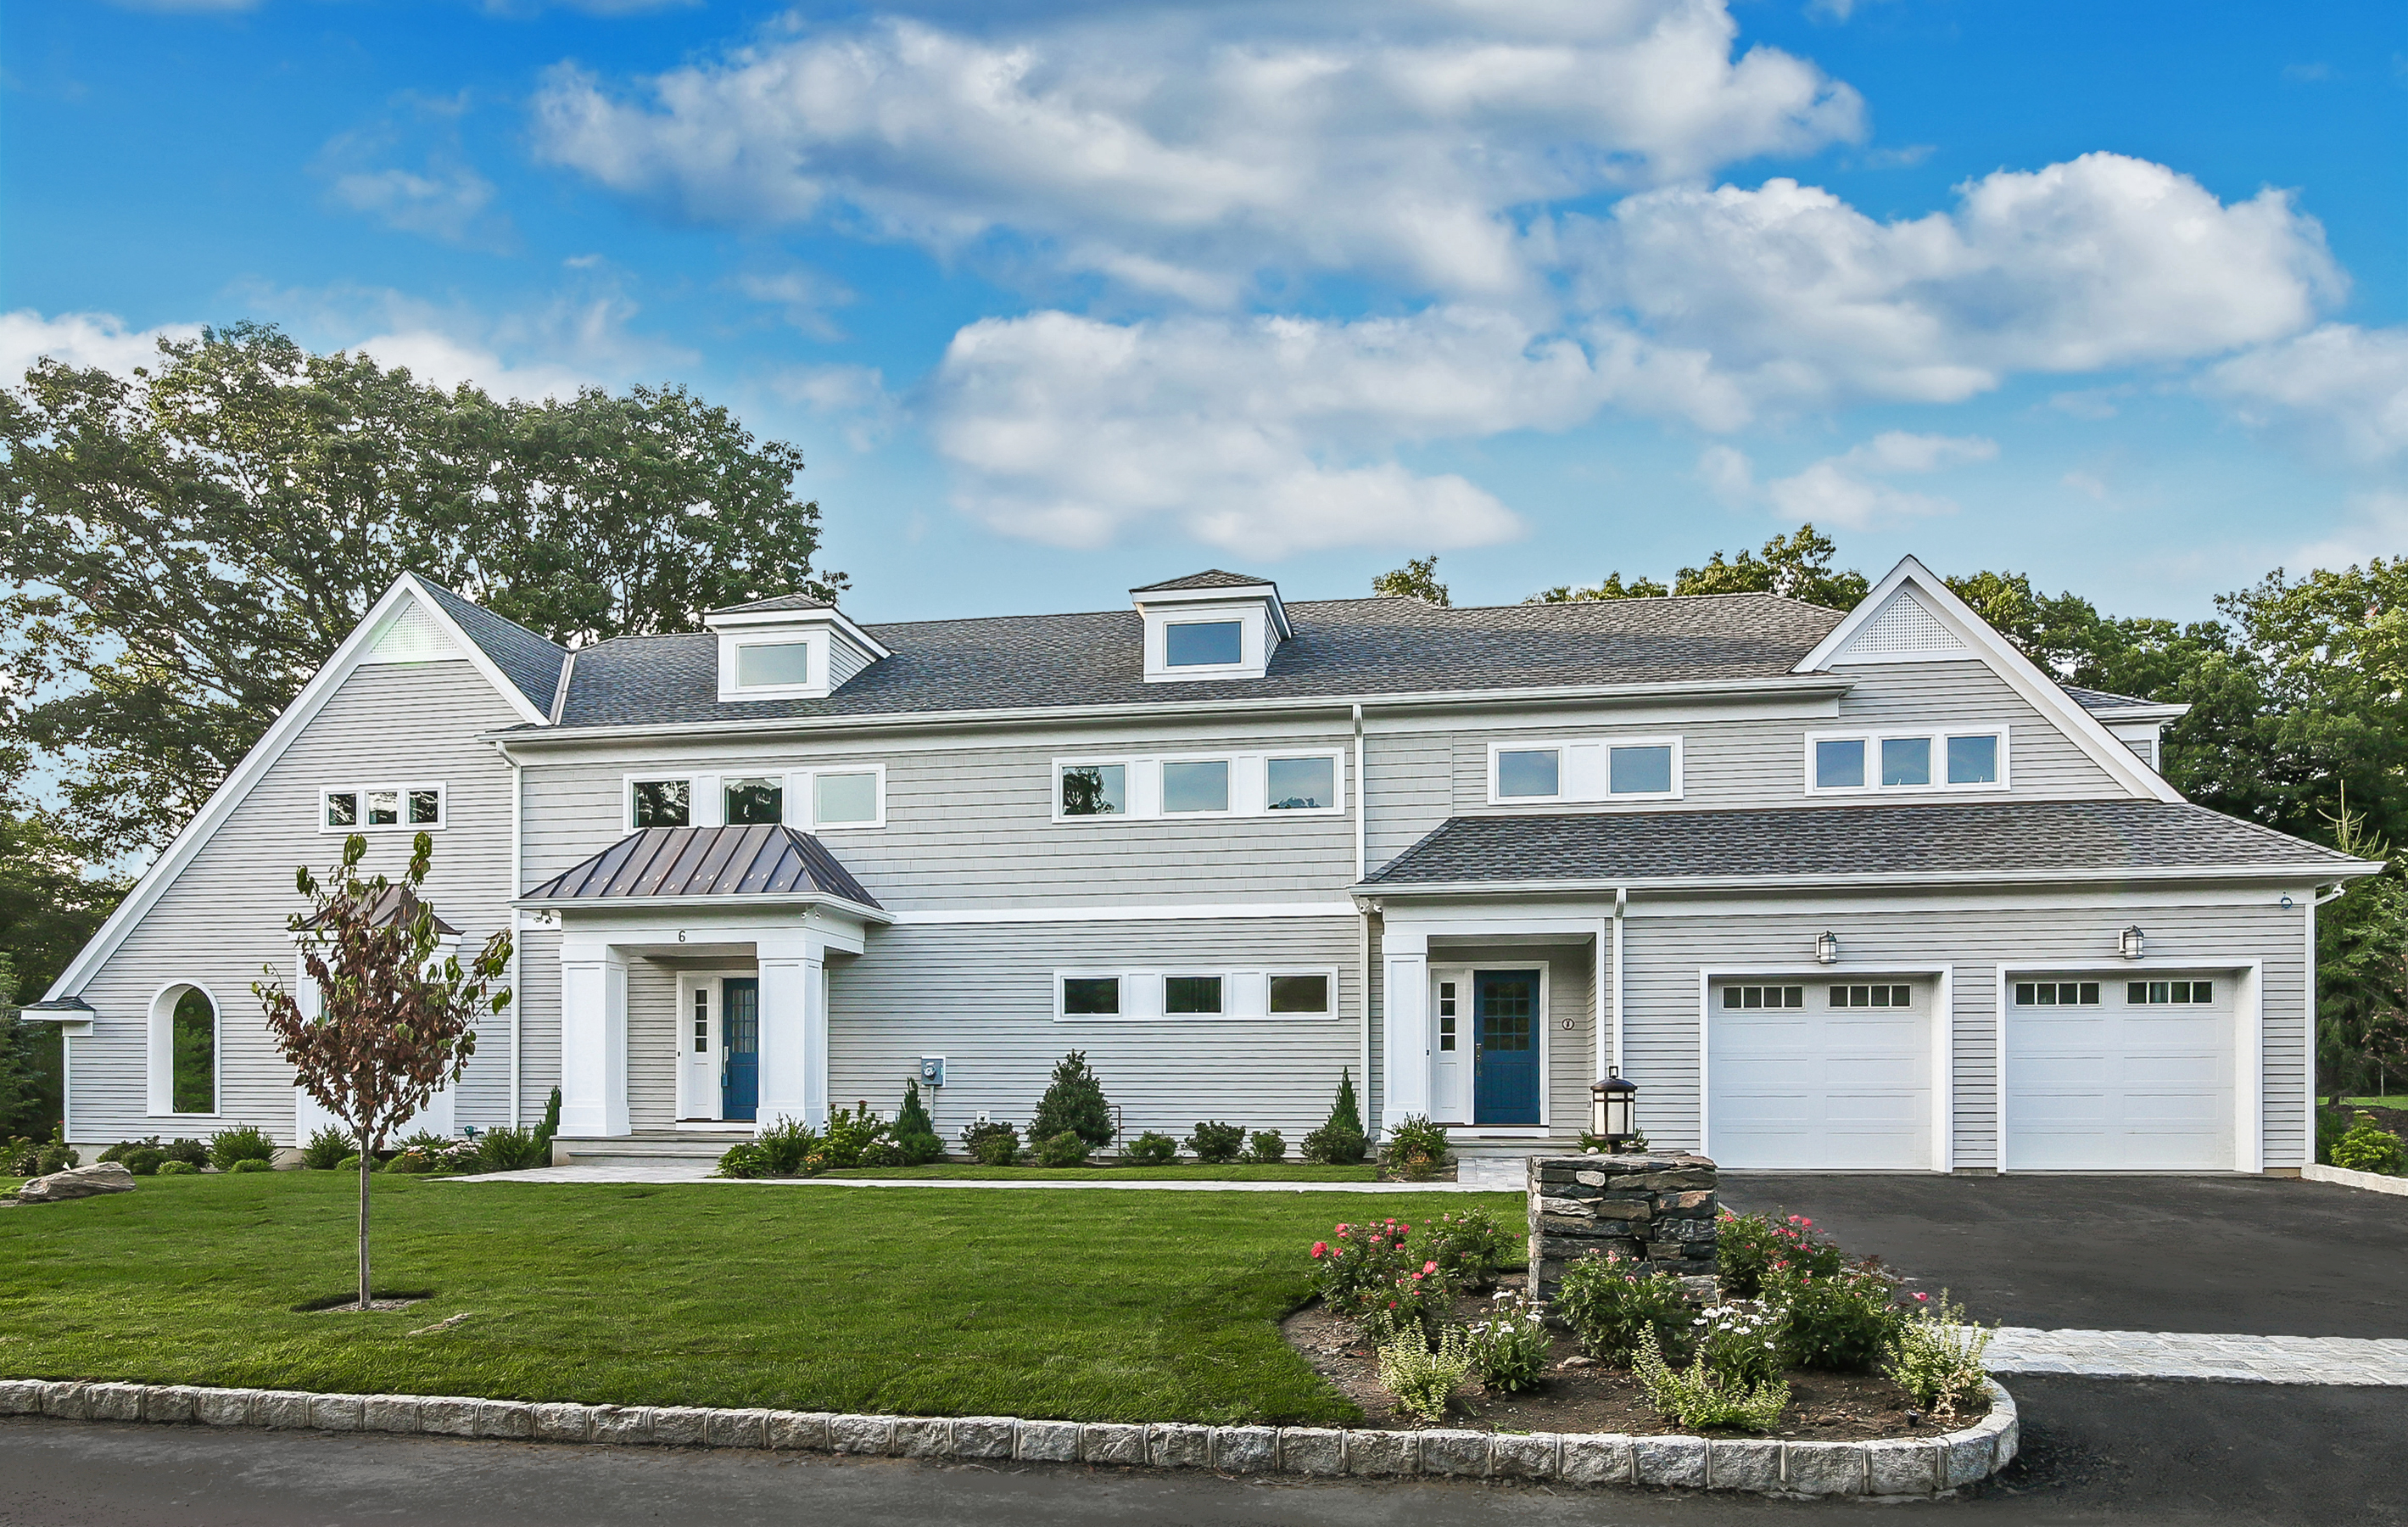 Single Family Home for Sale at 6 Castle Brooke Road West Harrison, New York, 10604 United States